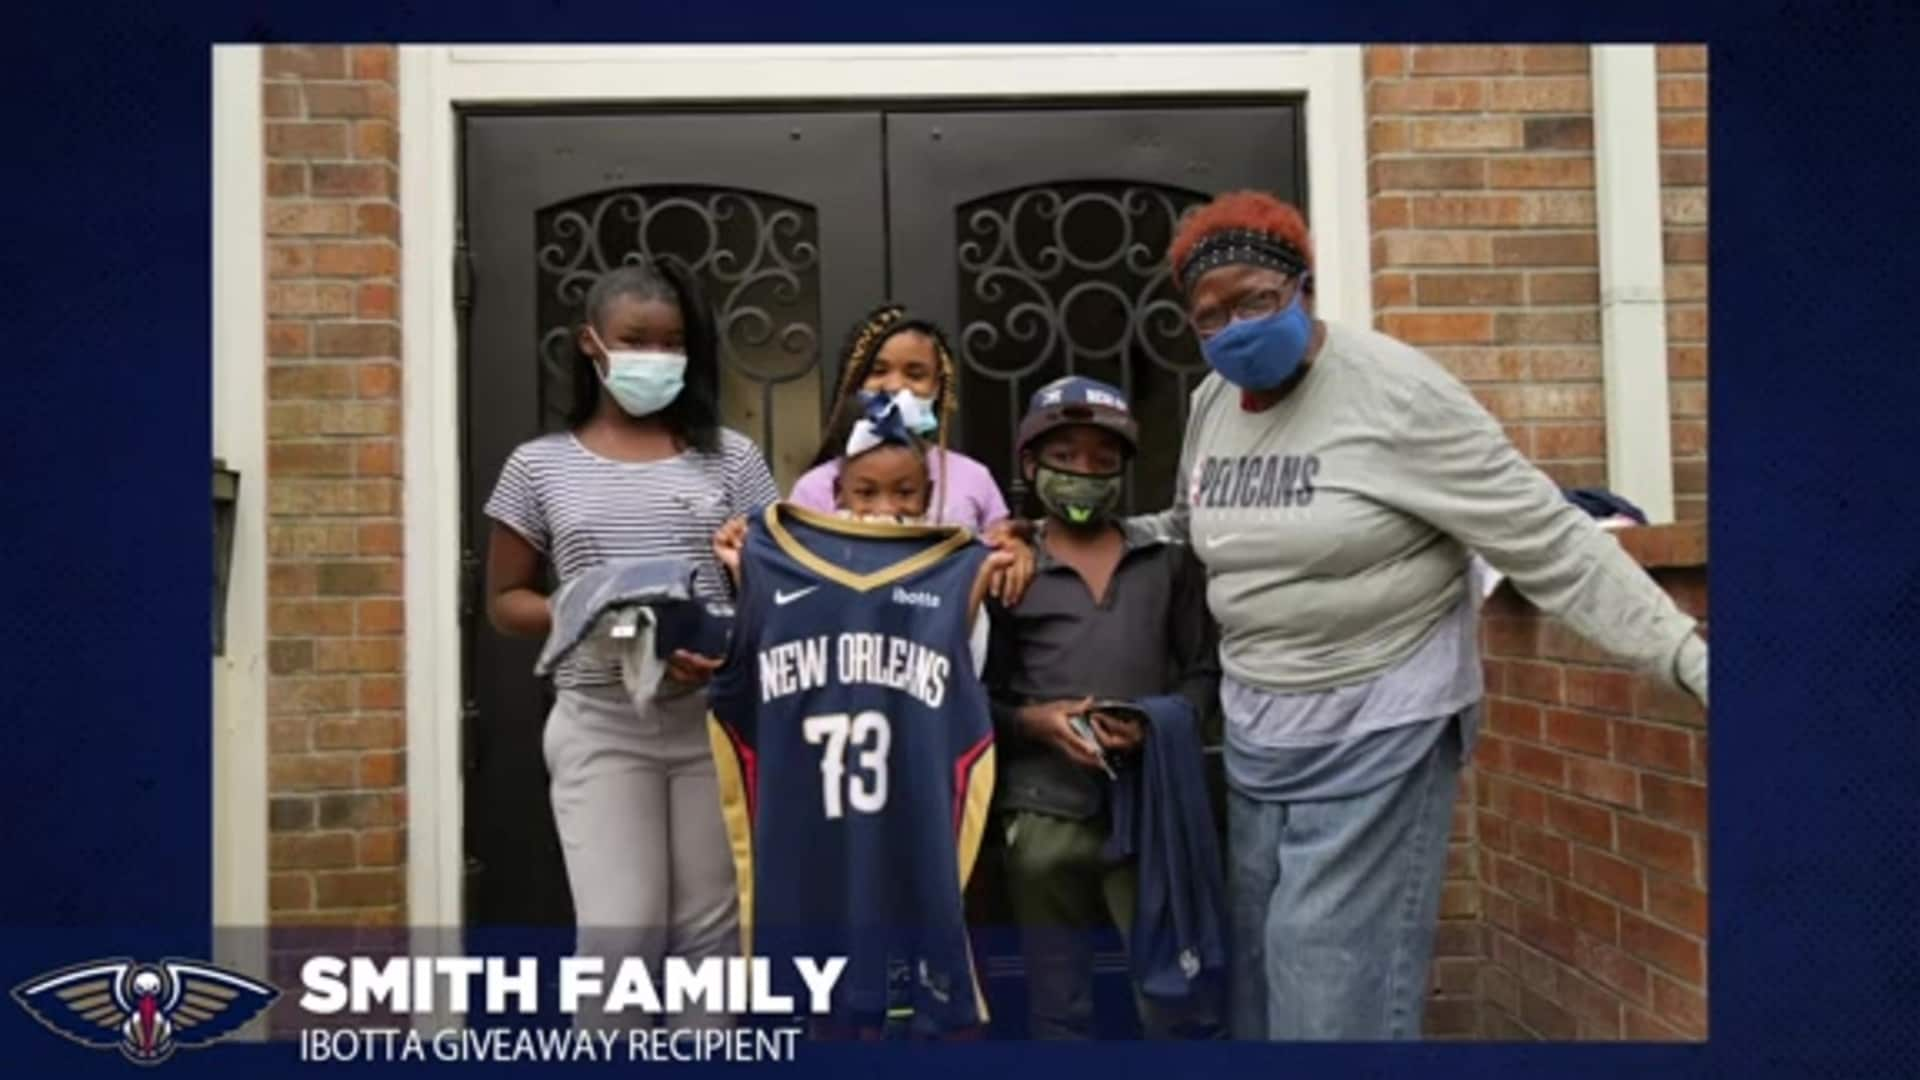 New Orleans Pelicans, Ibotta team up to provide five families with Thanksgiving meal, gifts